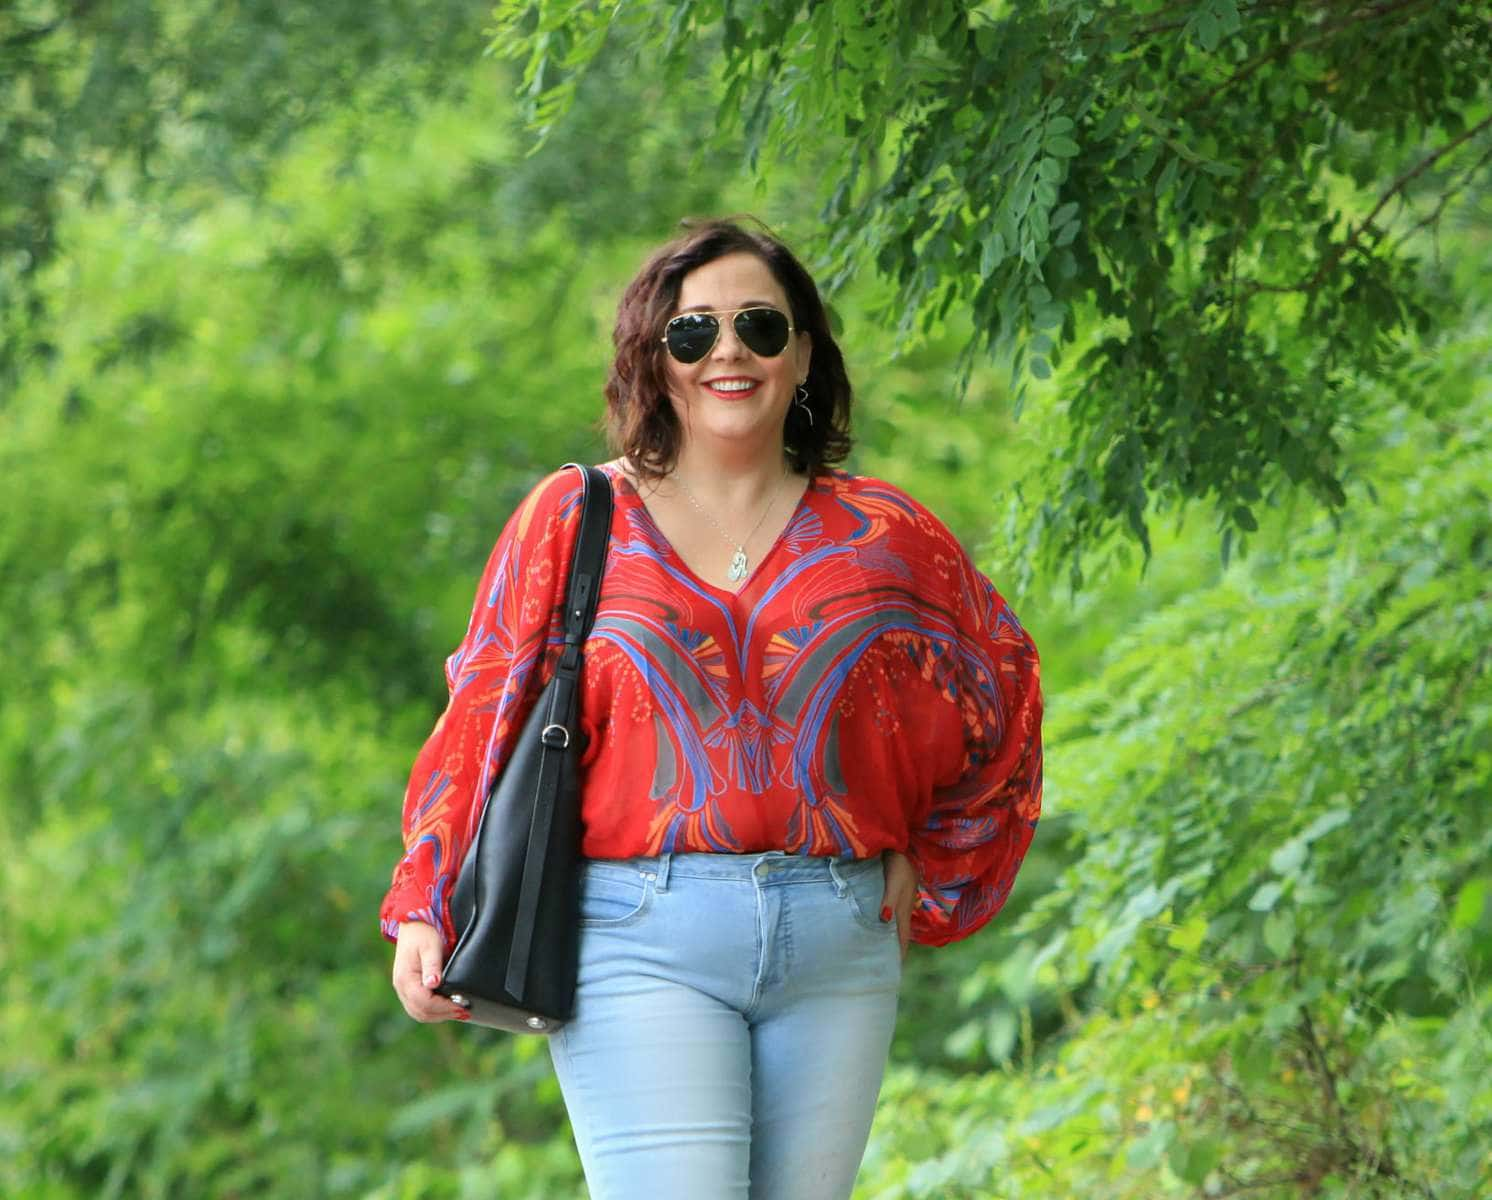 Alison Gary of Wardrobe Oxygen standing with hand on her hip, smiling. She is wearing a red printed blouse and light denim jeans with aviator sunglasses